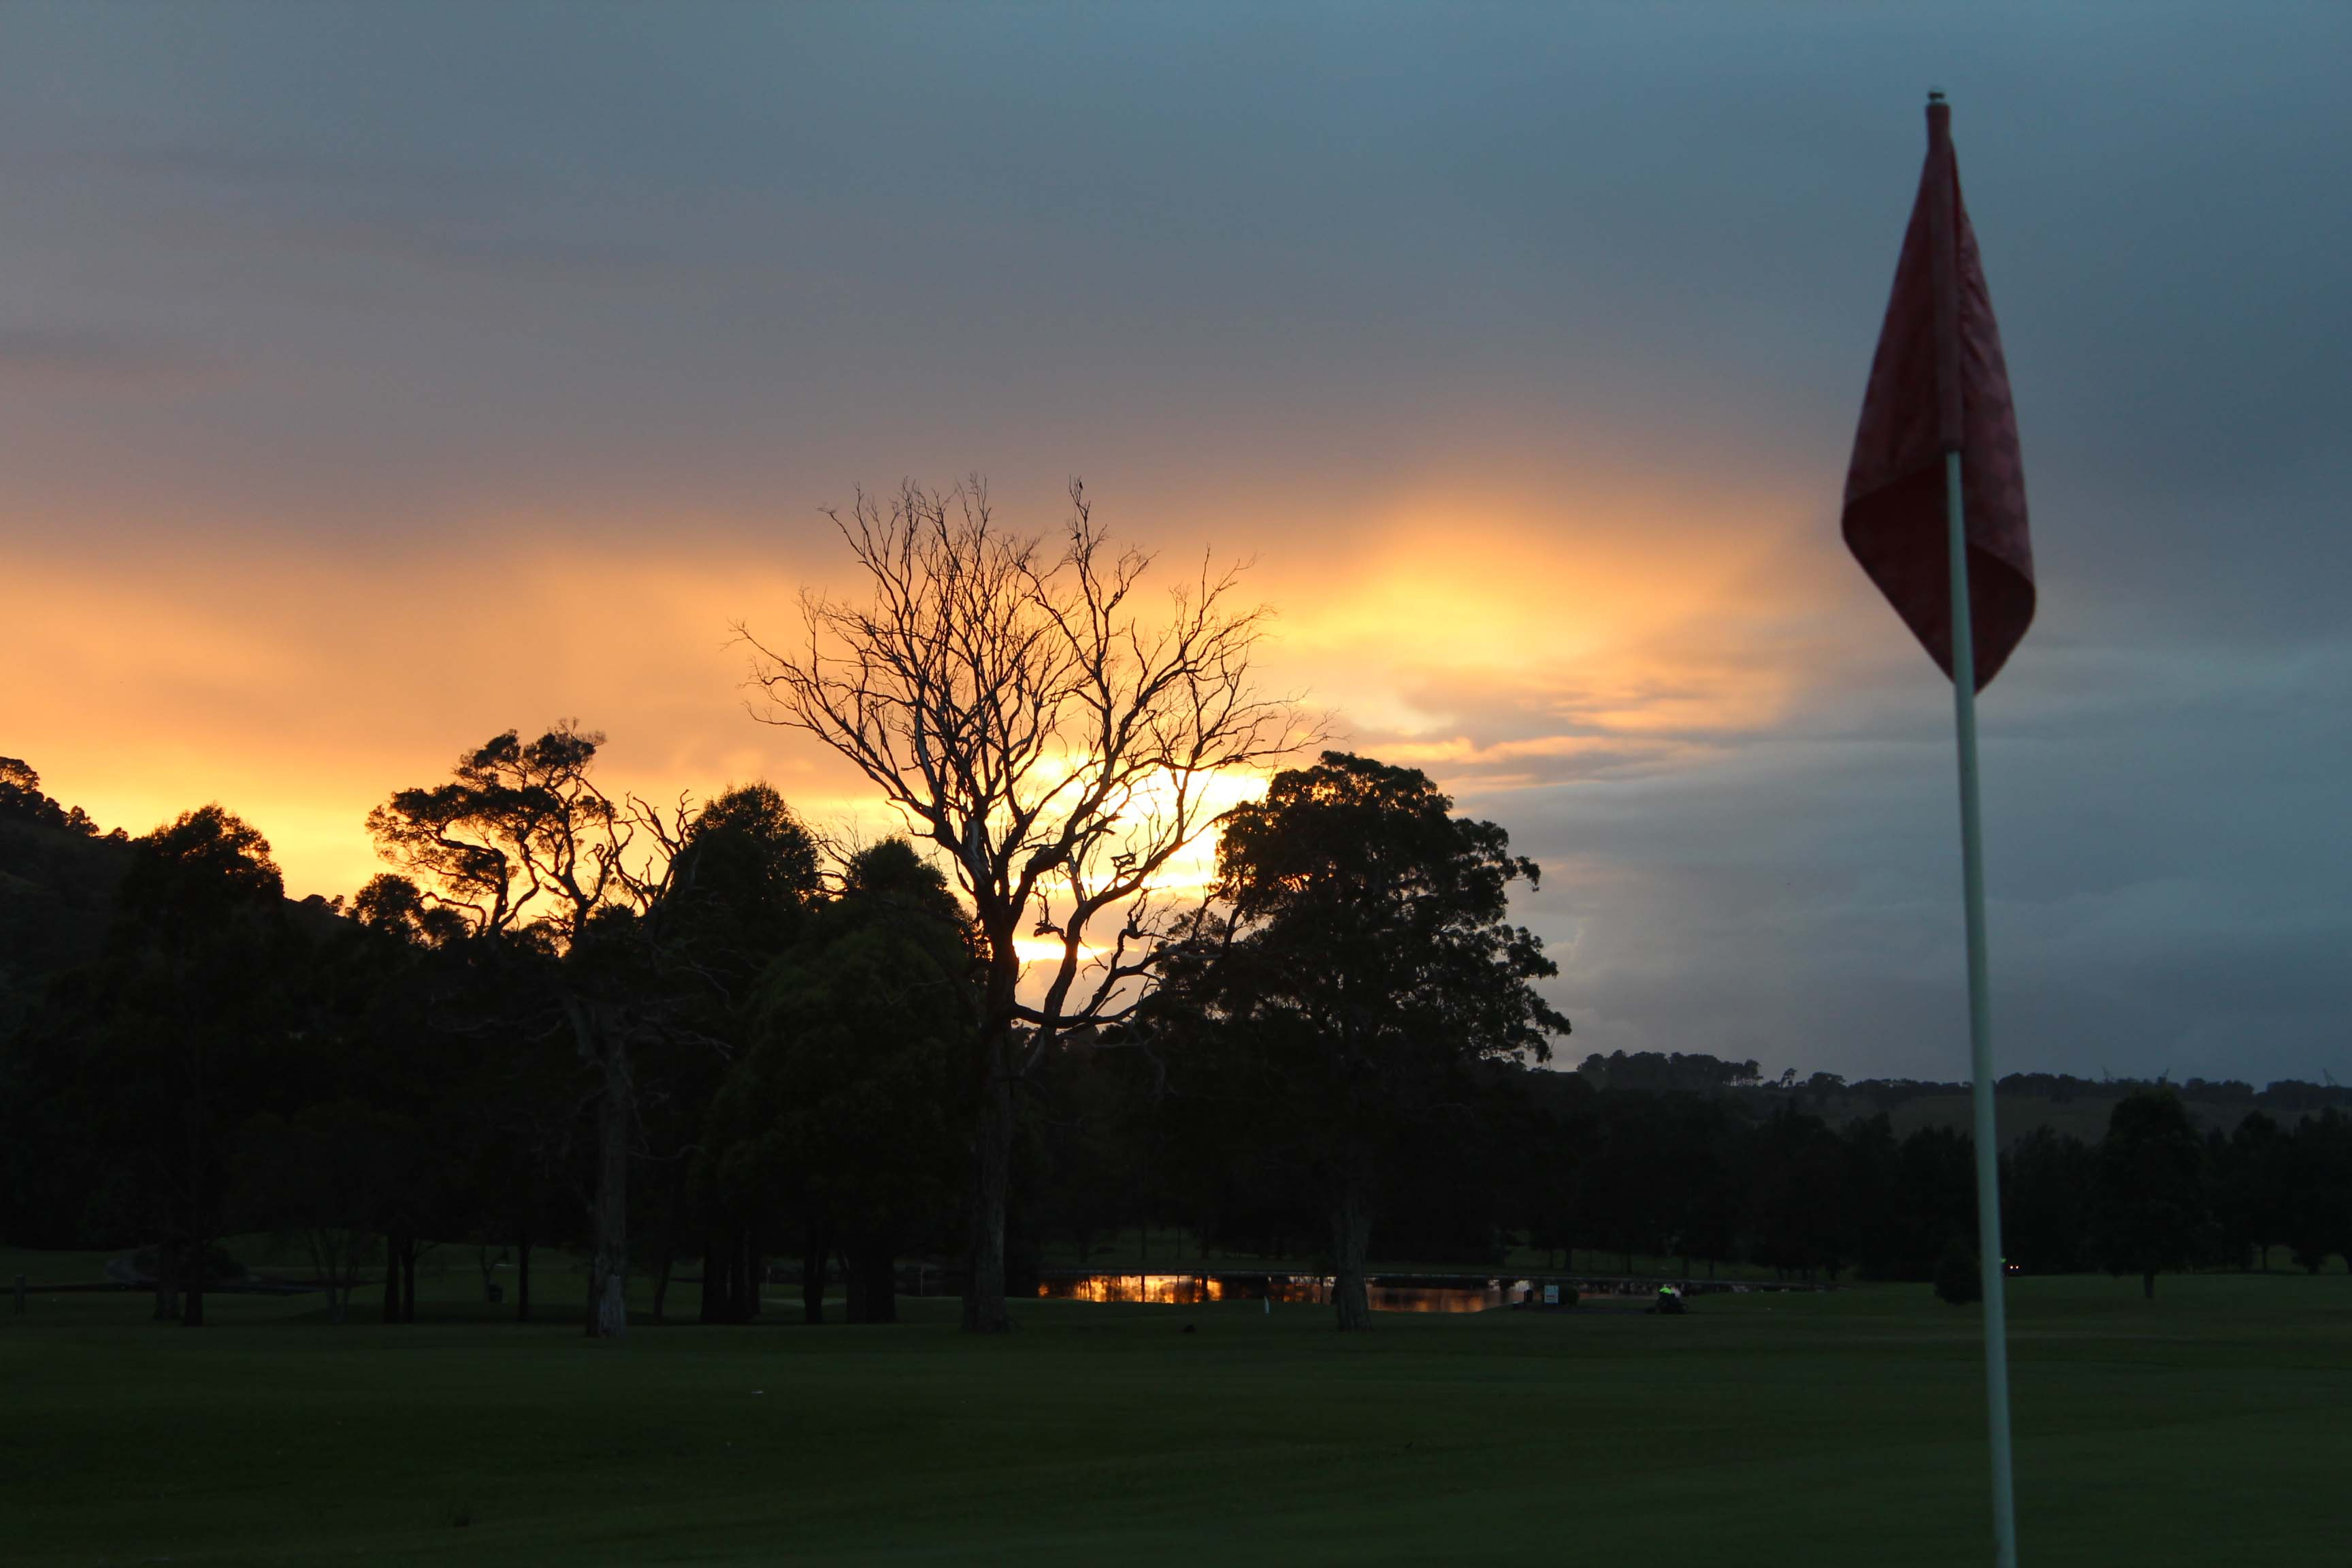 sunrise at Calderwood Valley Golf Course